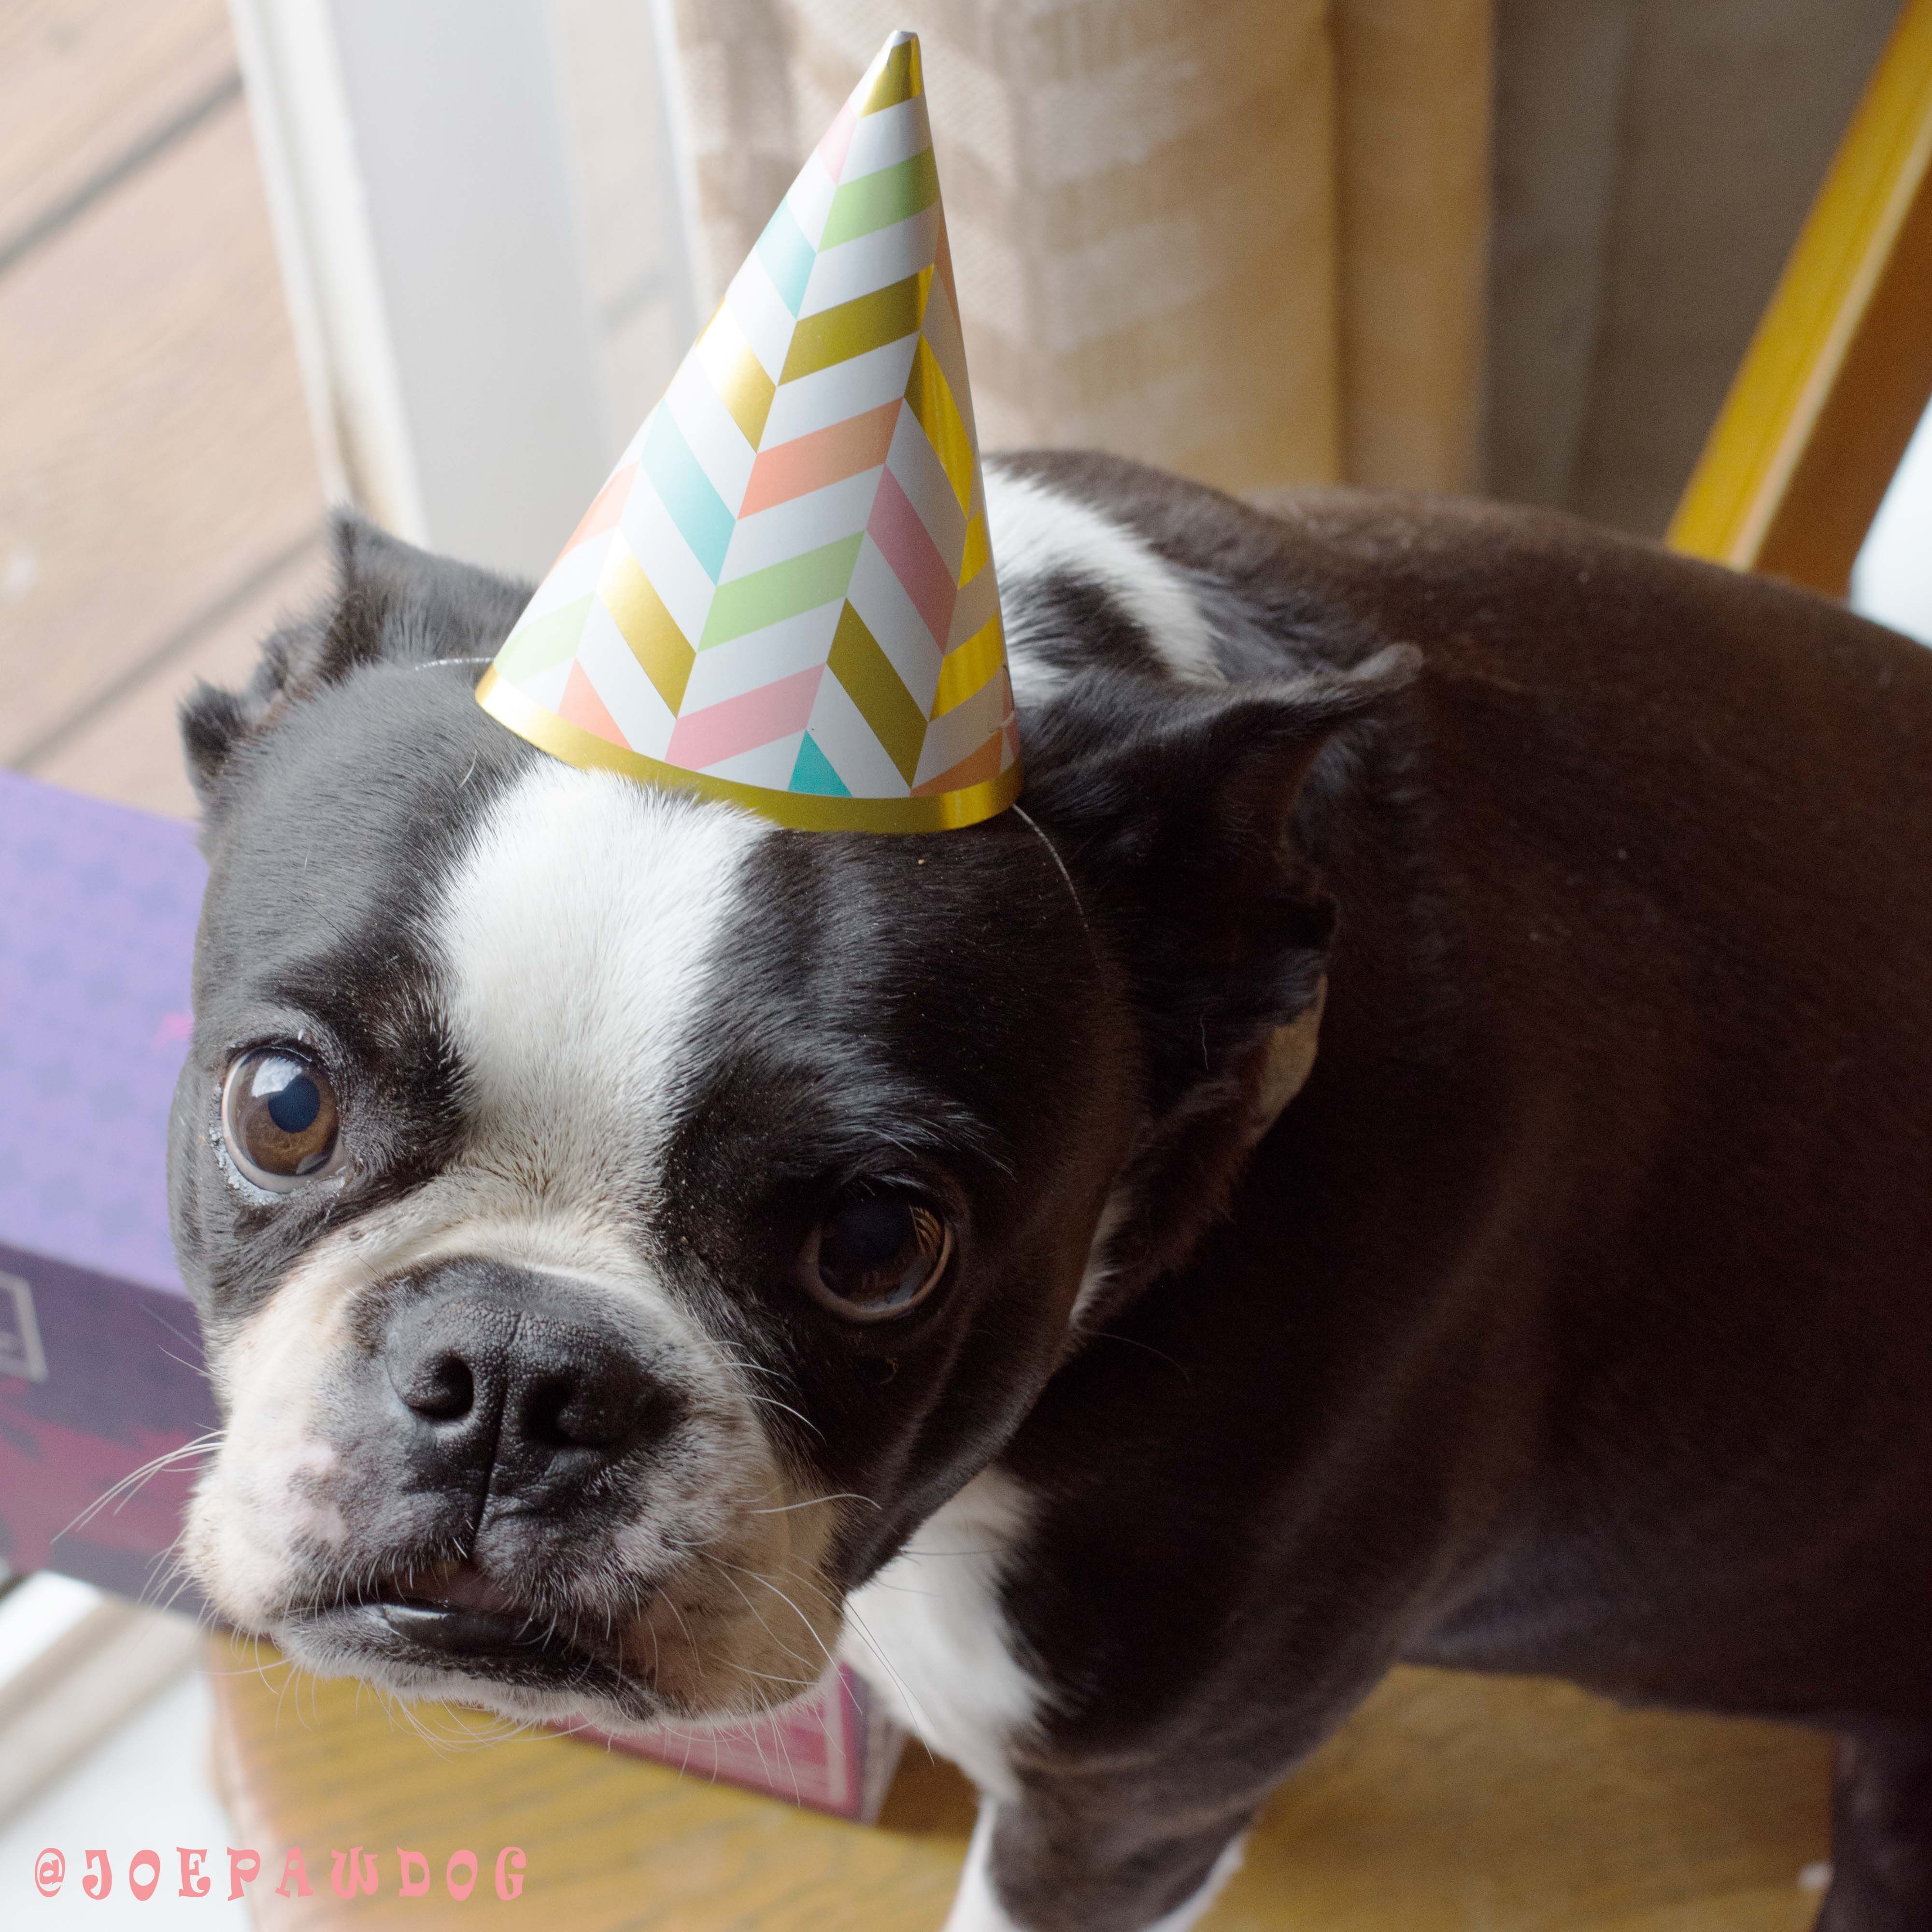 Happy Birthday To Me Today Is My Birthday And I Turn 7 Years Old I Can Hardly Believe It I St Boston Terrier Dog Boston Terrier Love Boston Terrier